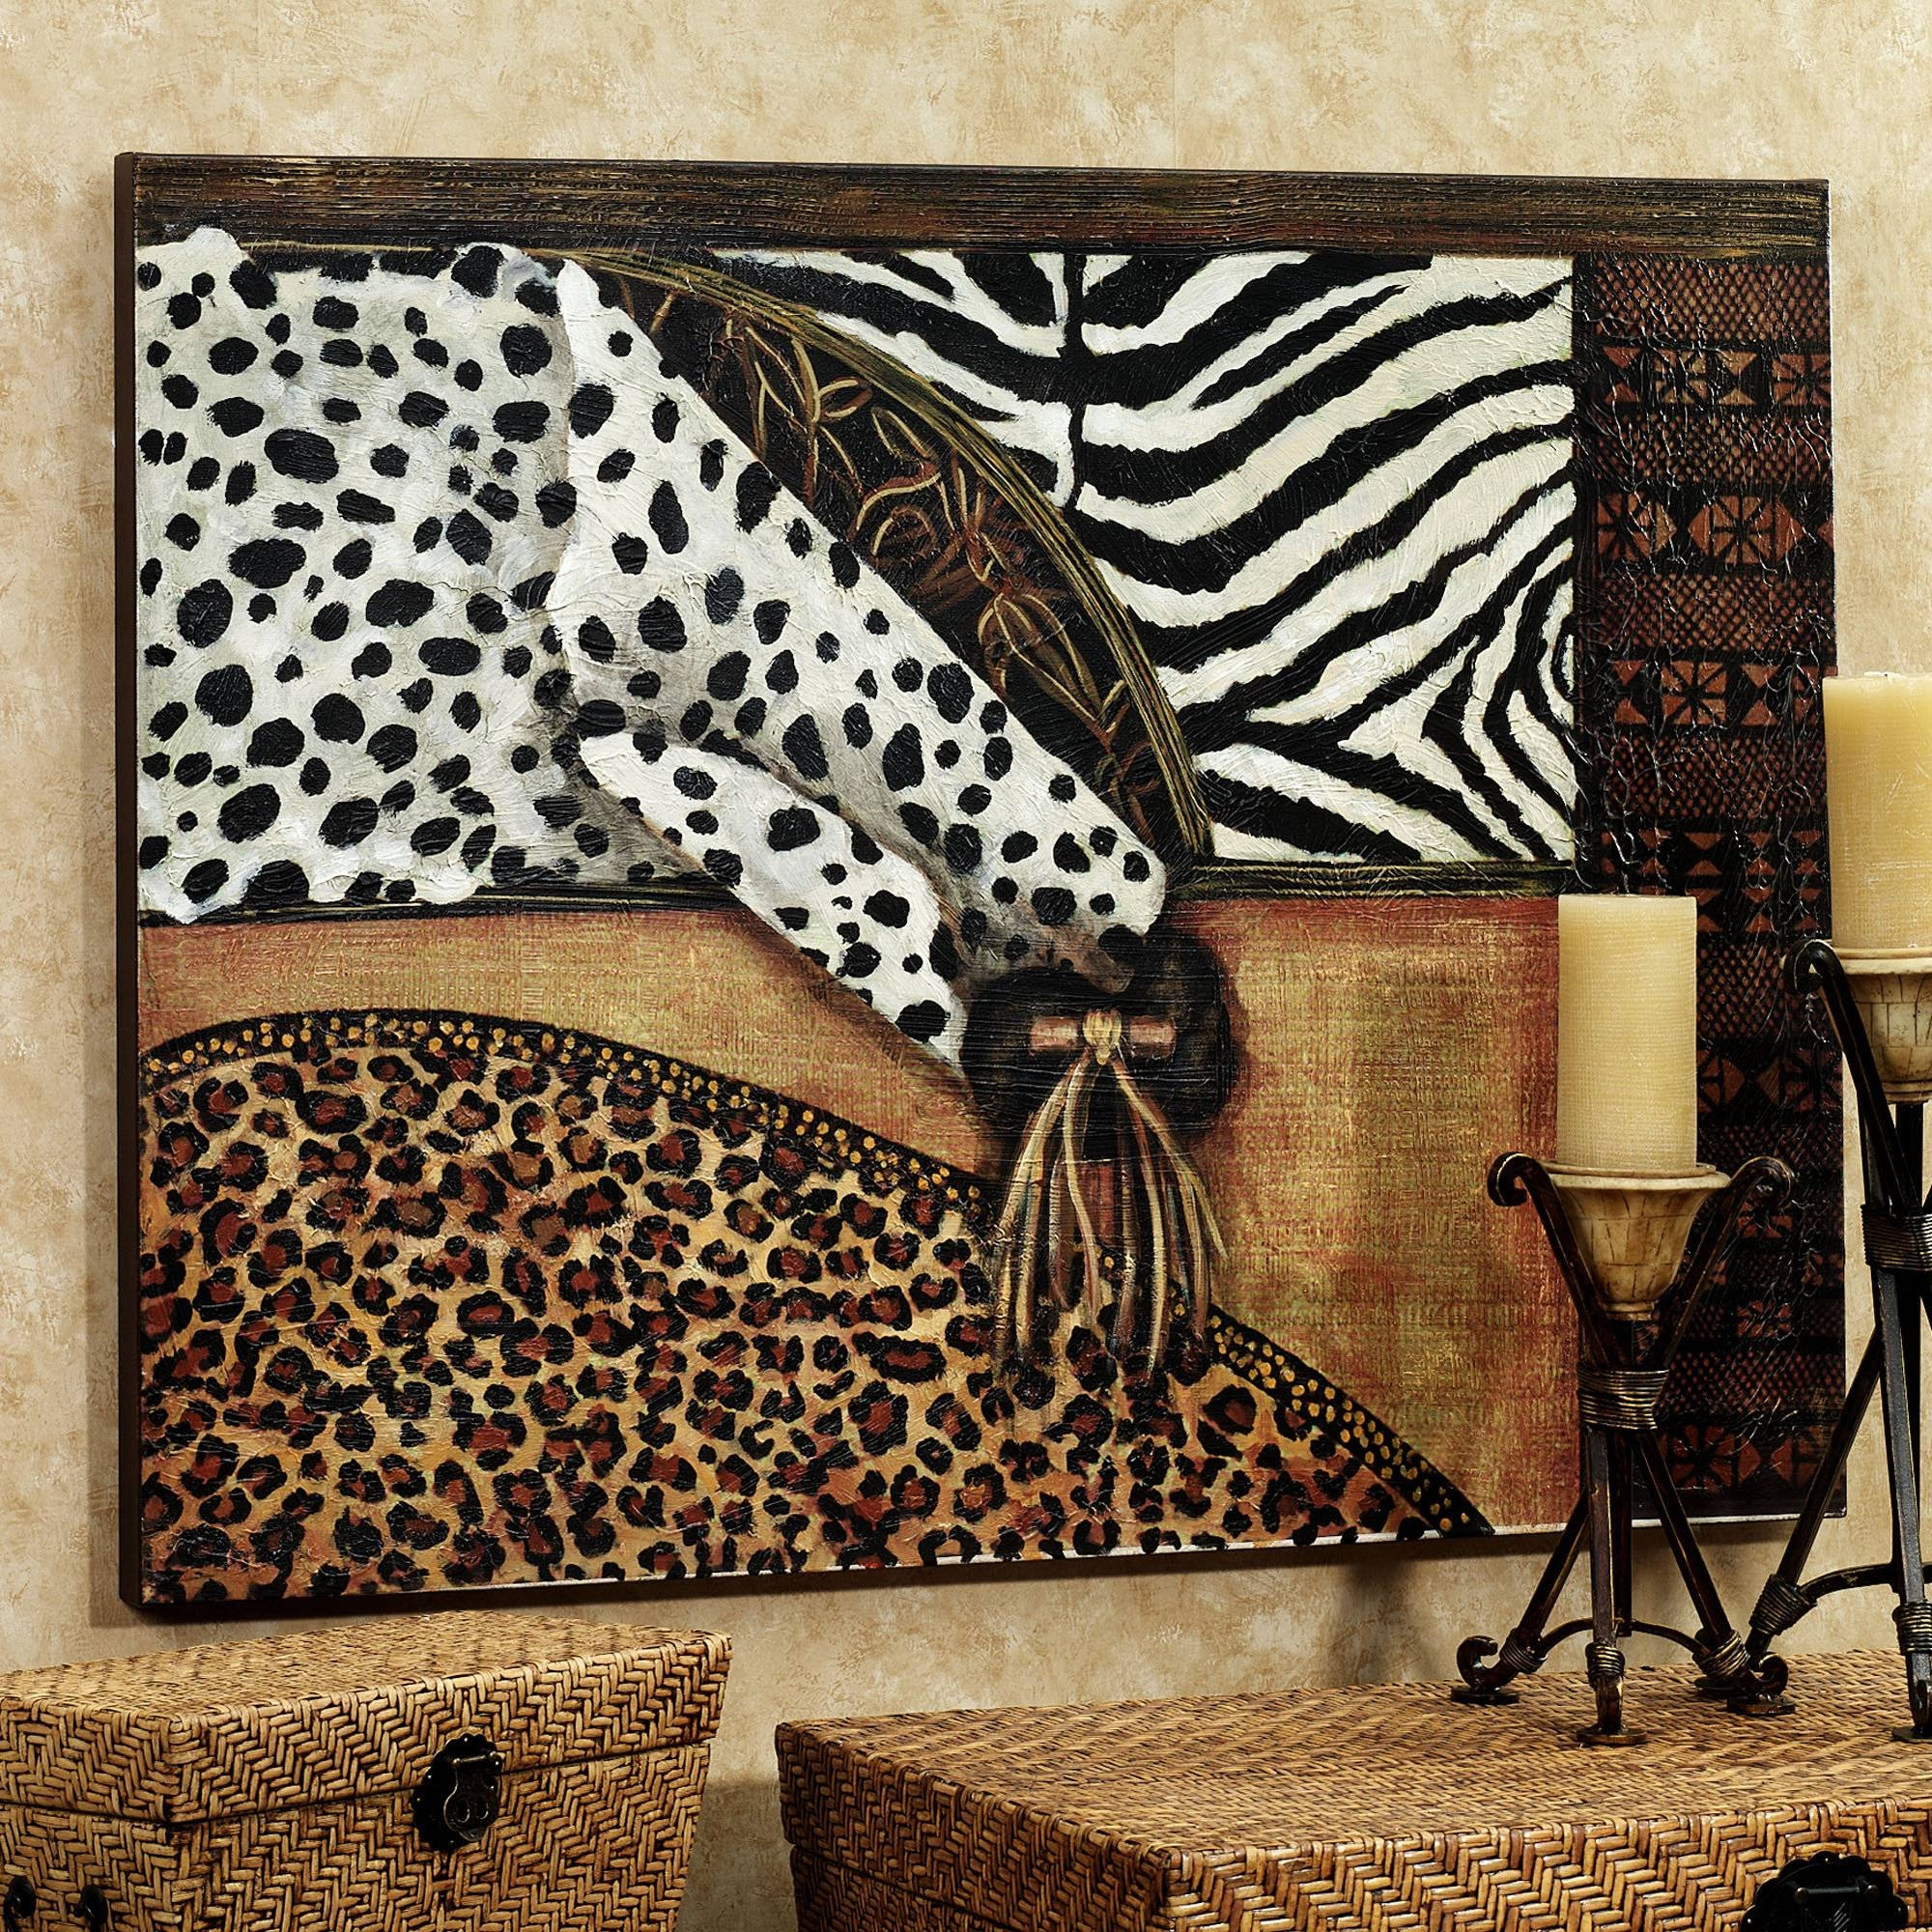 Wall Art Designs: Marvelous Natural Animal Print Canvas Wall Art Regarding Most Recently Released Animal Wall Art canvas (View 15 of 20)